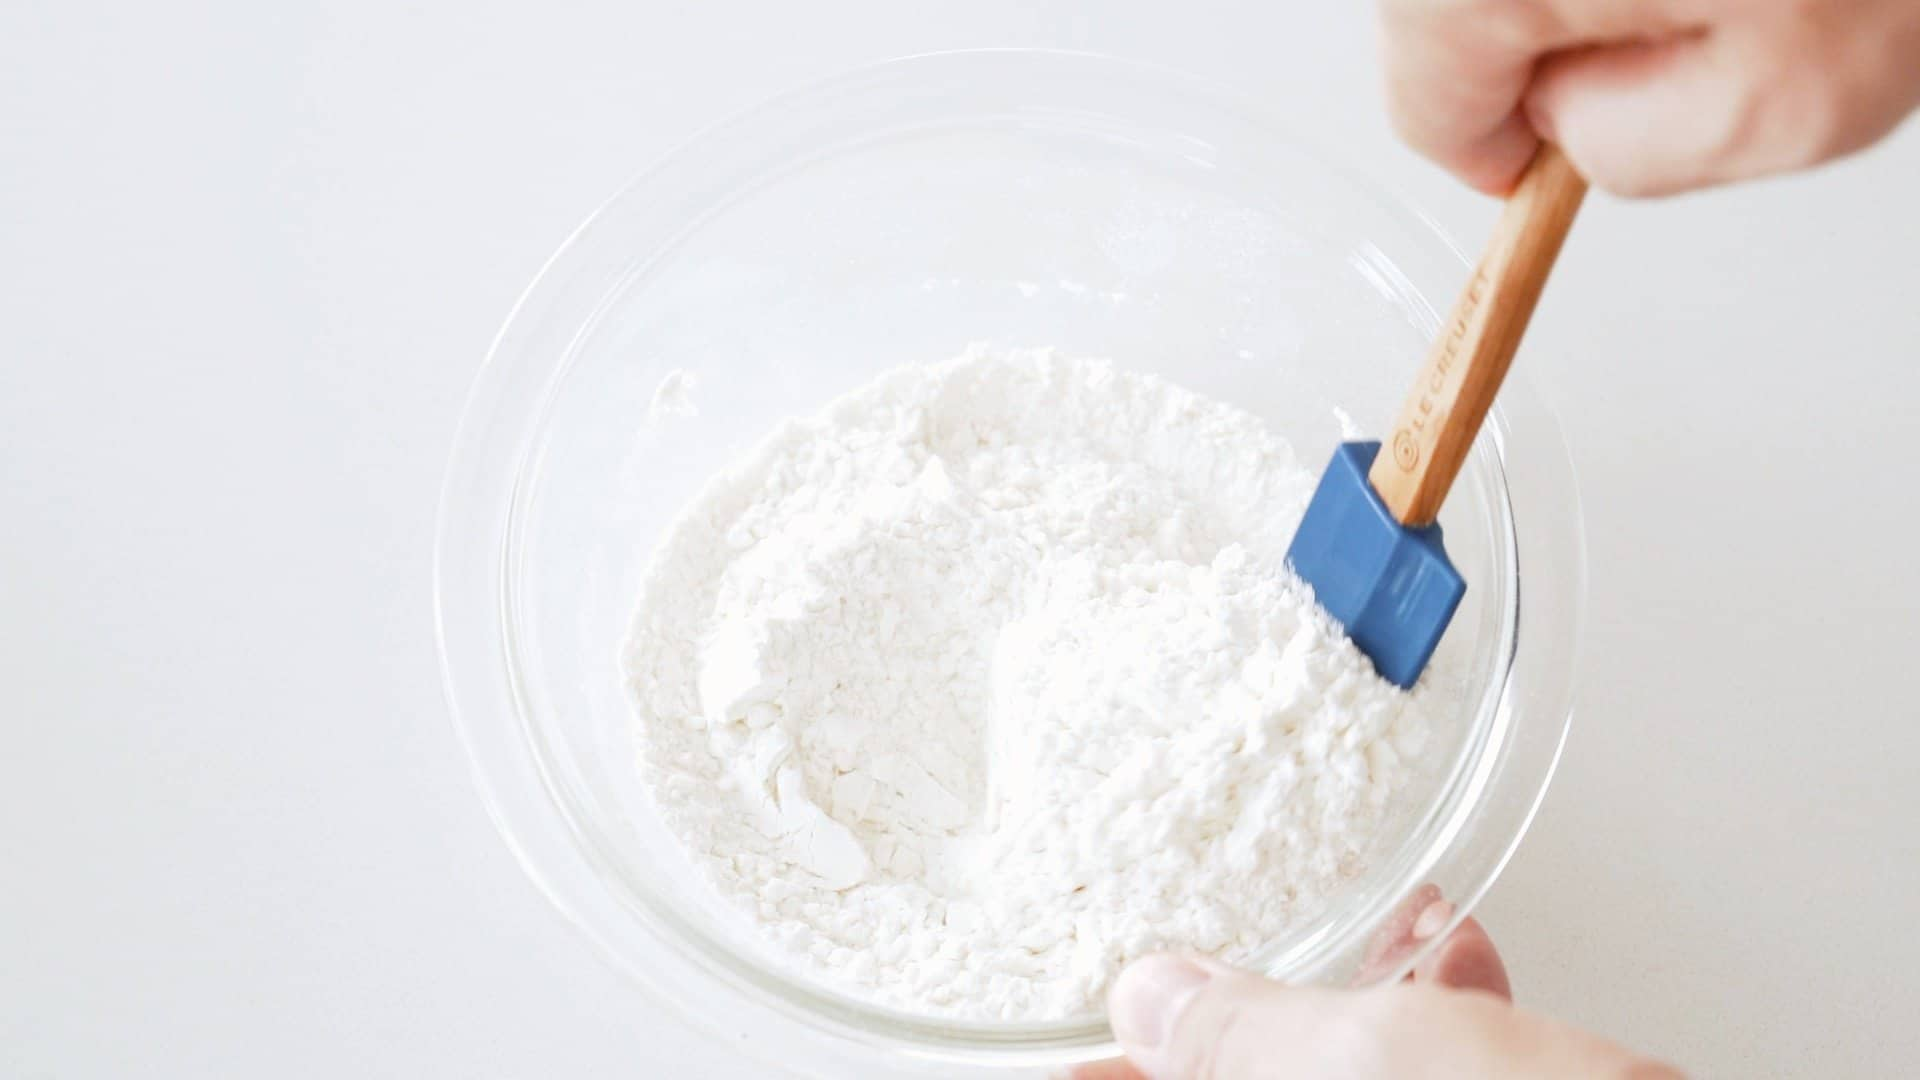 Mixing flour and salt in a glass bowl for making Hungarian Dumplings.